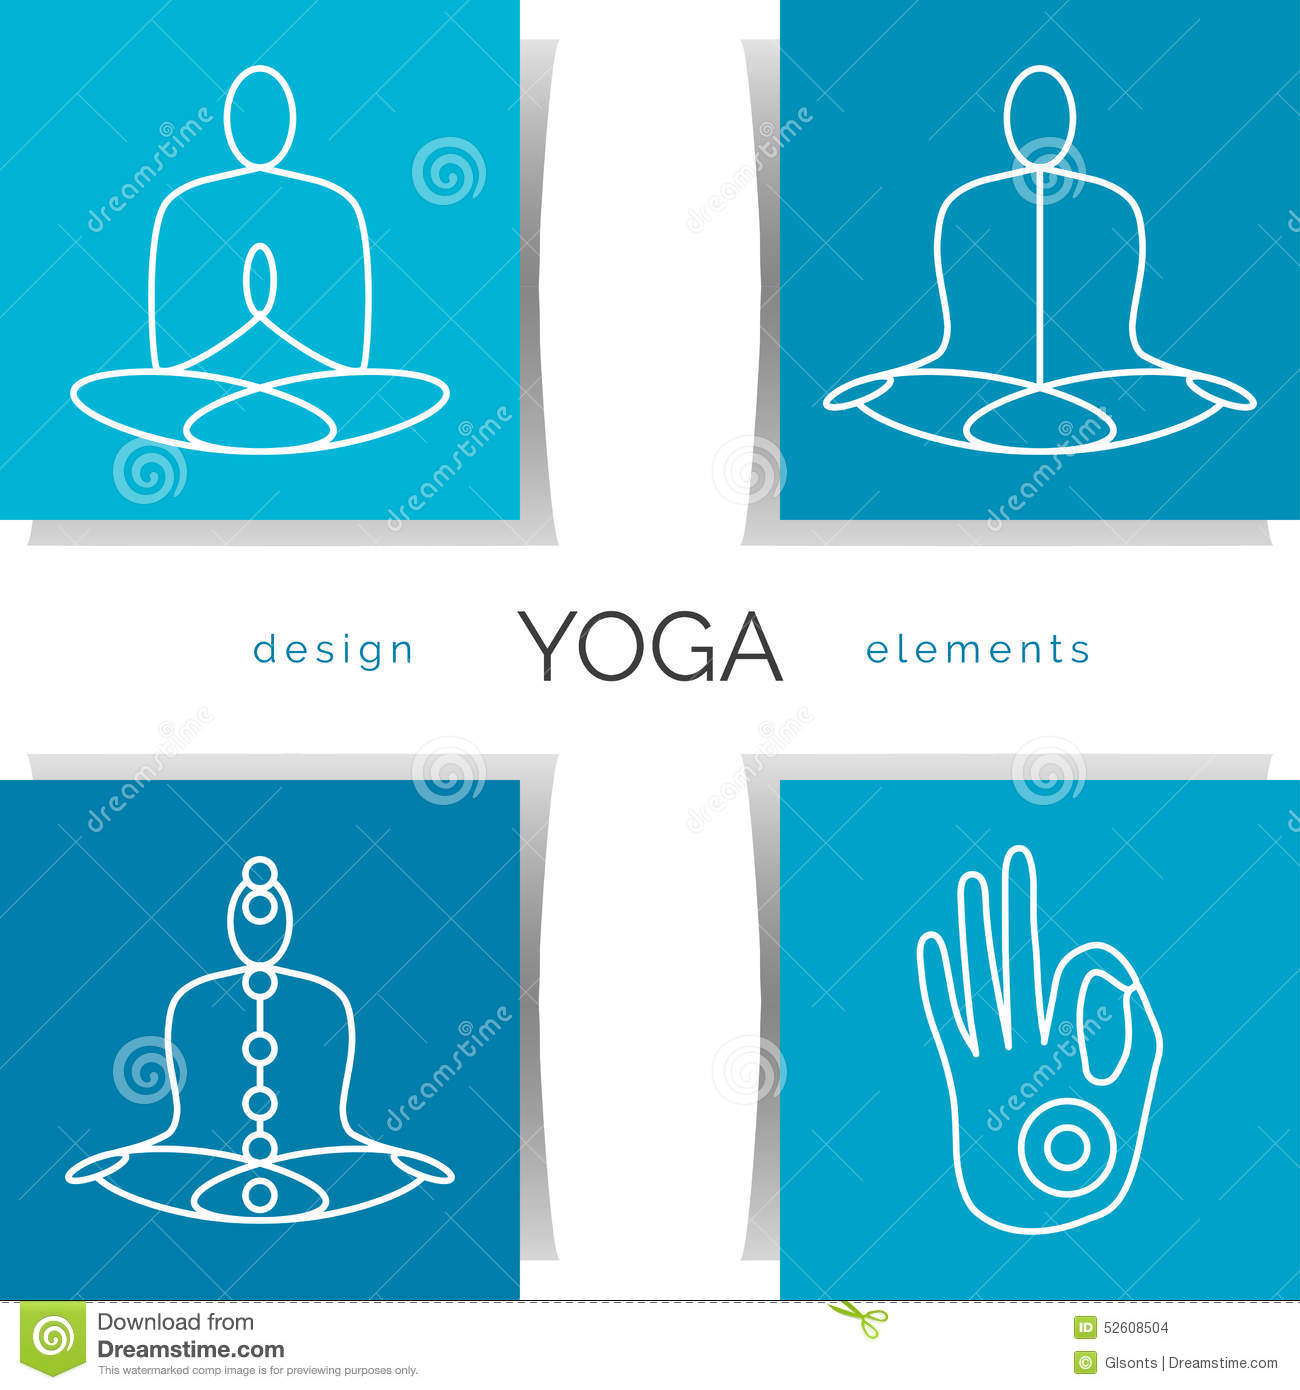 Poster design yoga - Royalty Free Vector